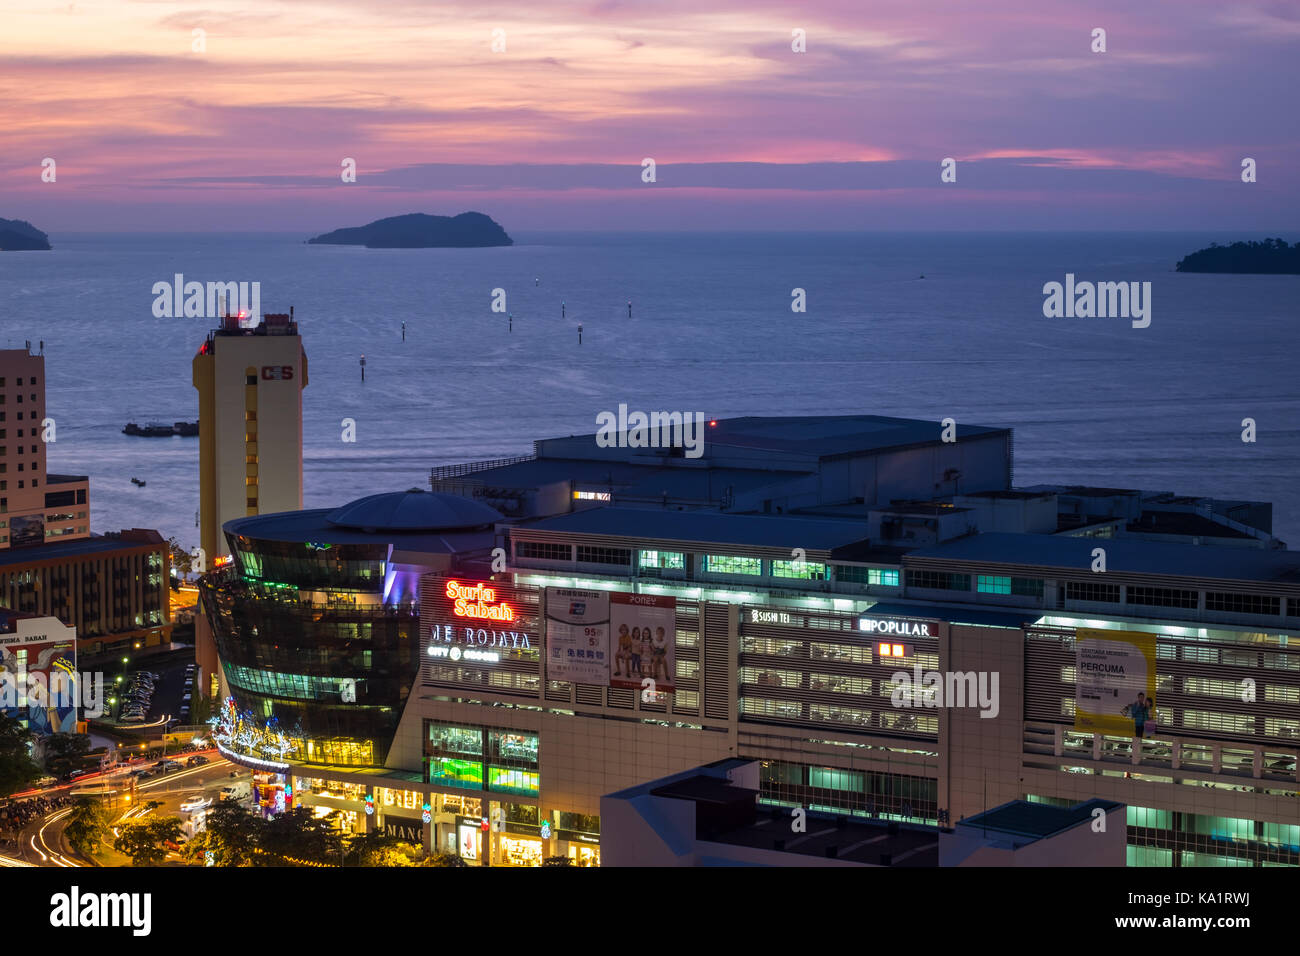 Kota Kinabalu at night with view featuring Suria Sabah and South China Sea - Stock Image